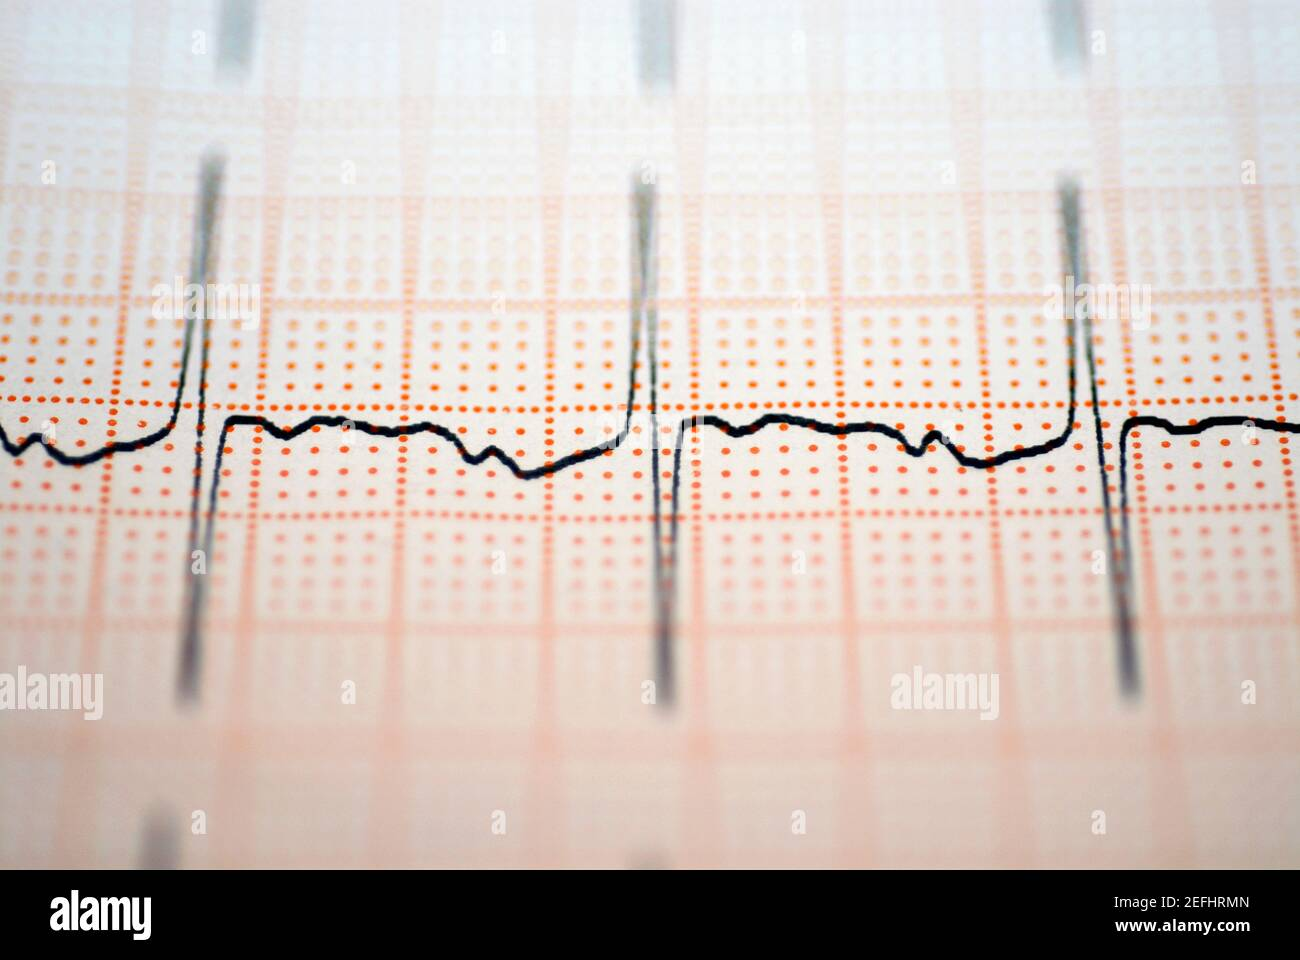 Close-up of an ECG report Stock Photo